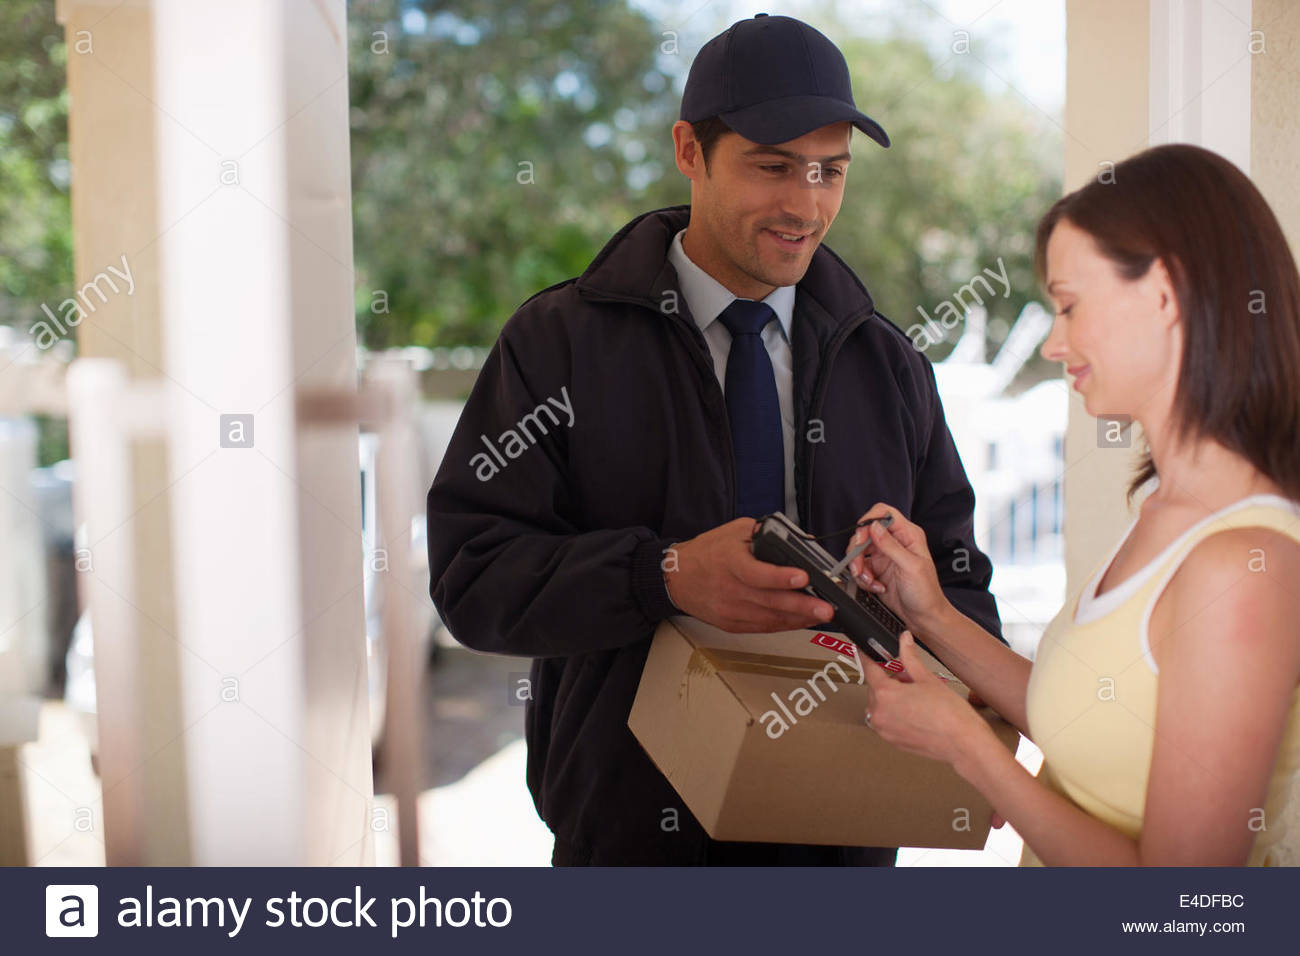 Woman signing for box from delivery man - Stock Image